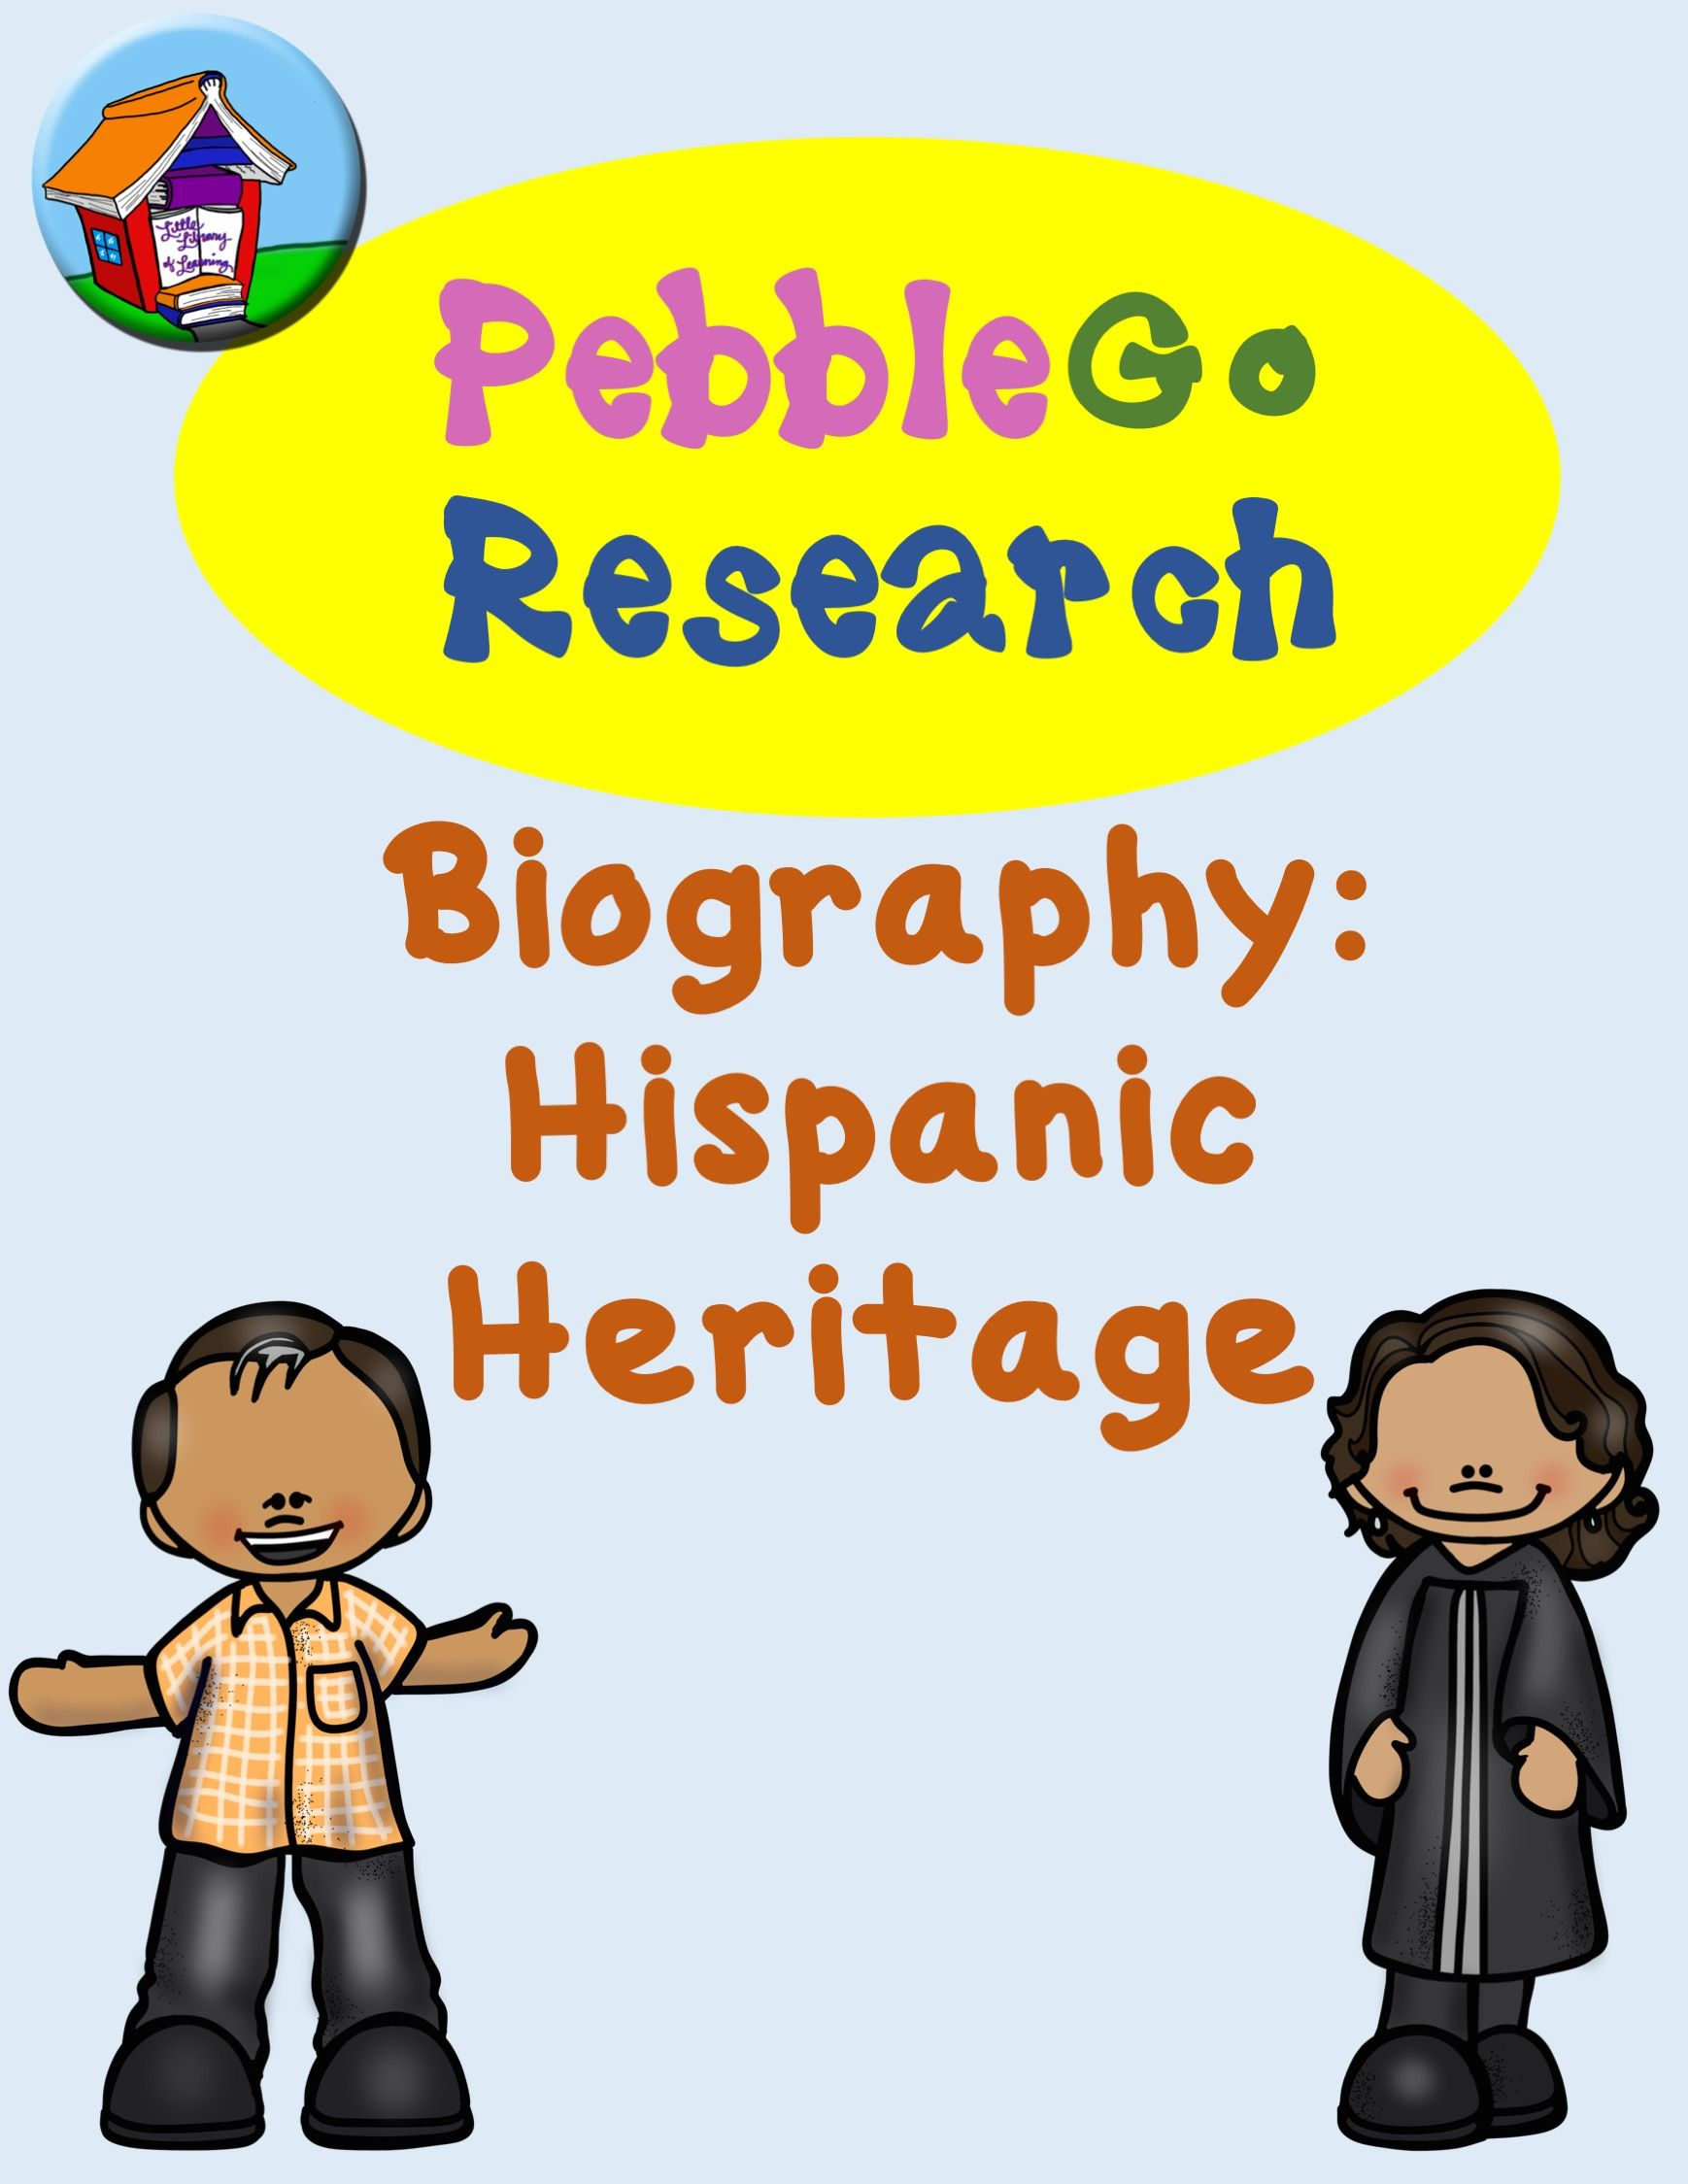 Pebblego Biography Hispanic Heritage